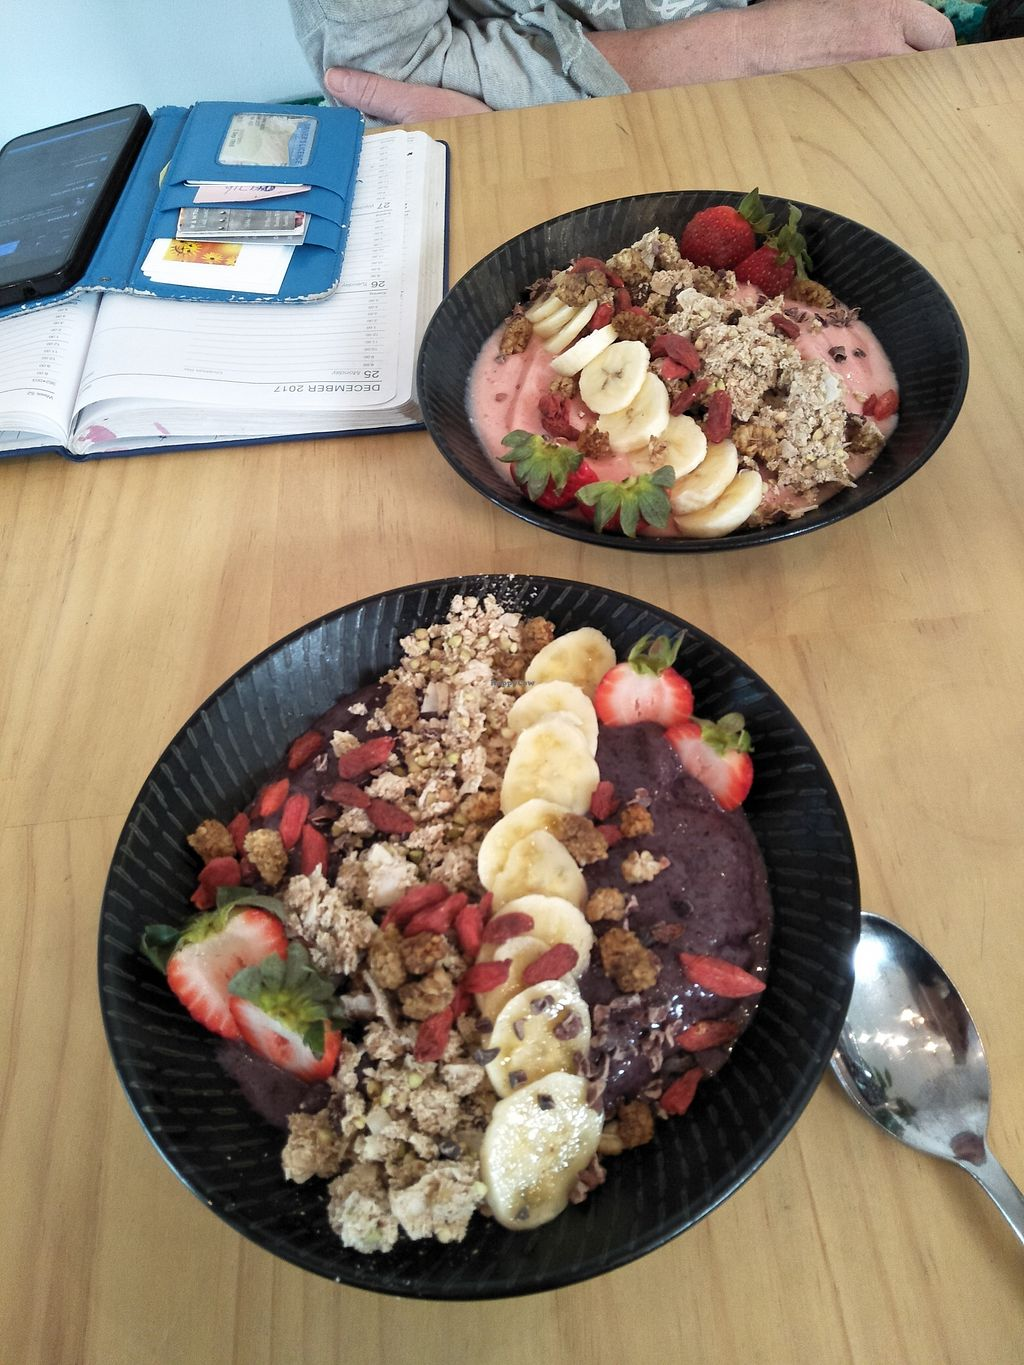 "Photo of The Plant Organic Cafe and Market  by <a href=""/members/profile/Cynthia1998"">Cynthia1998</a> <br/>Acai bowl and strawberry baobab smoothie bowl <br/> December 29, 2017  - <a href='/contact/abuse/image/43667/340405'>Report</a>"